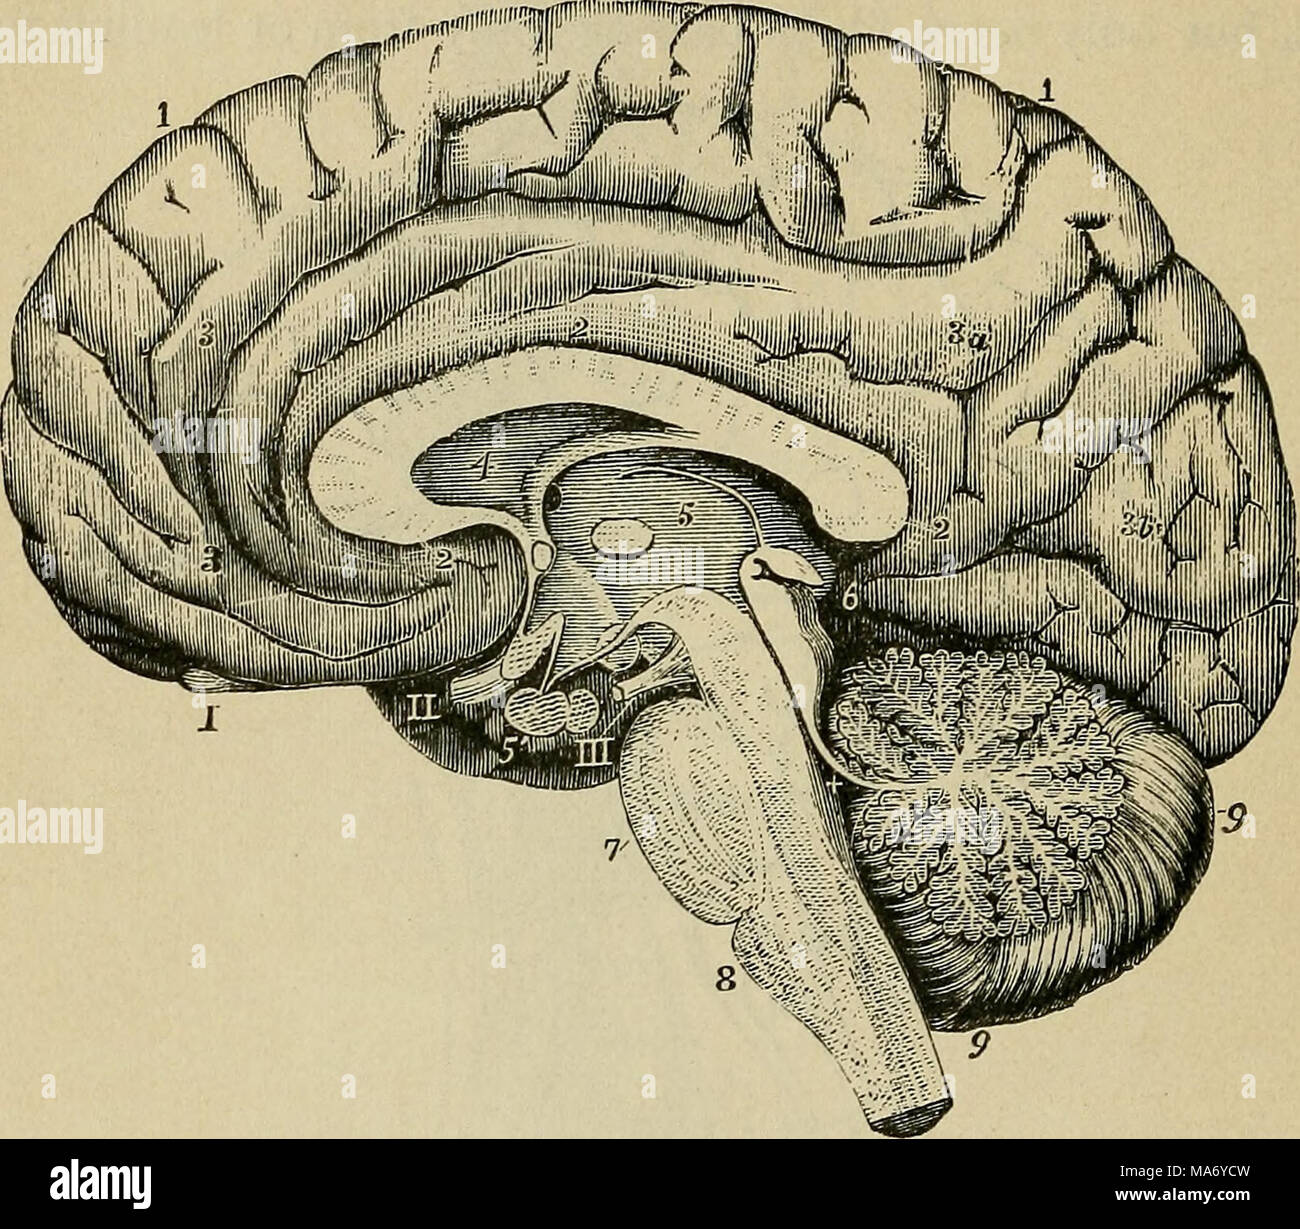 Pineal Gland Stock Photos & Pineal Gland Stock Images - Alamy